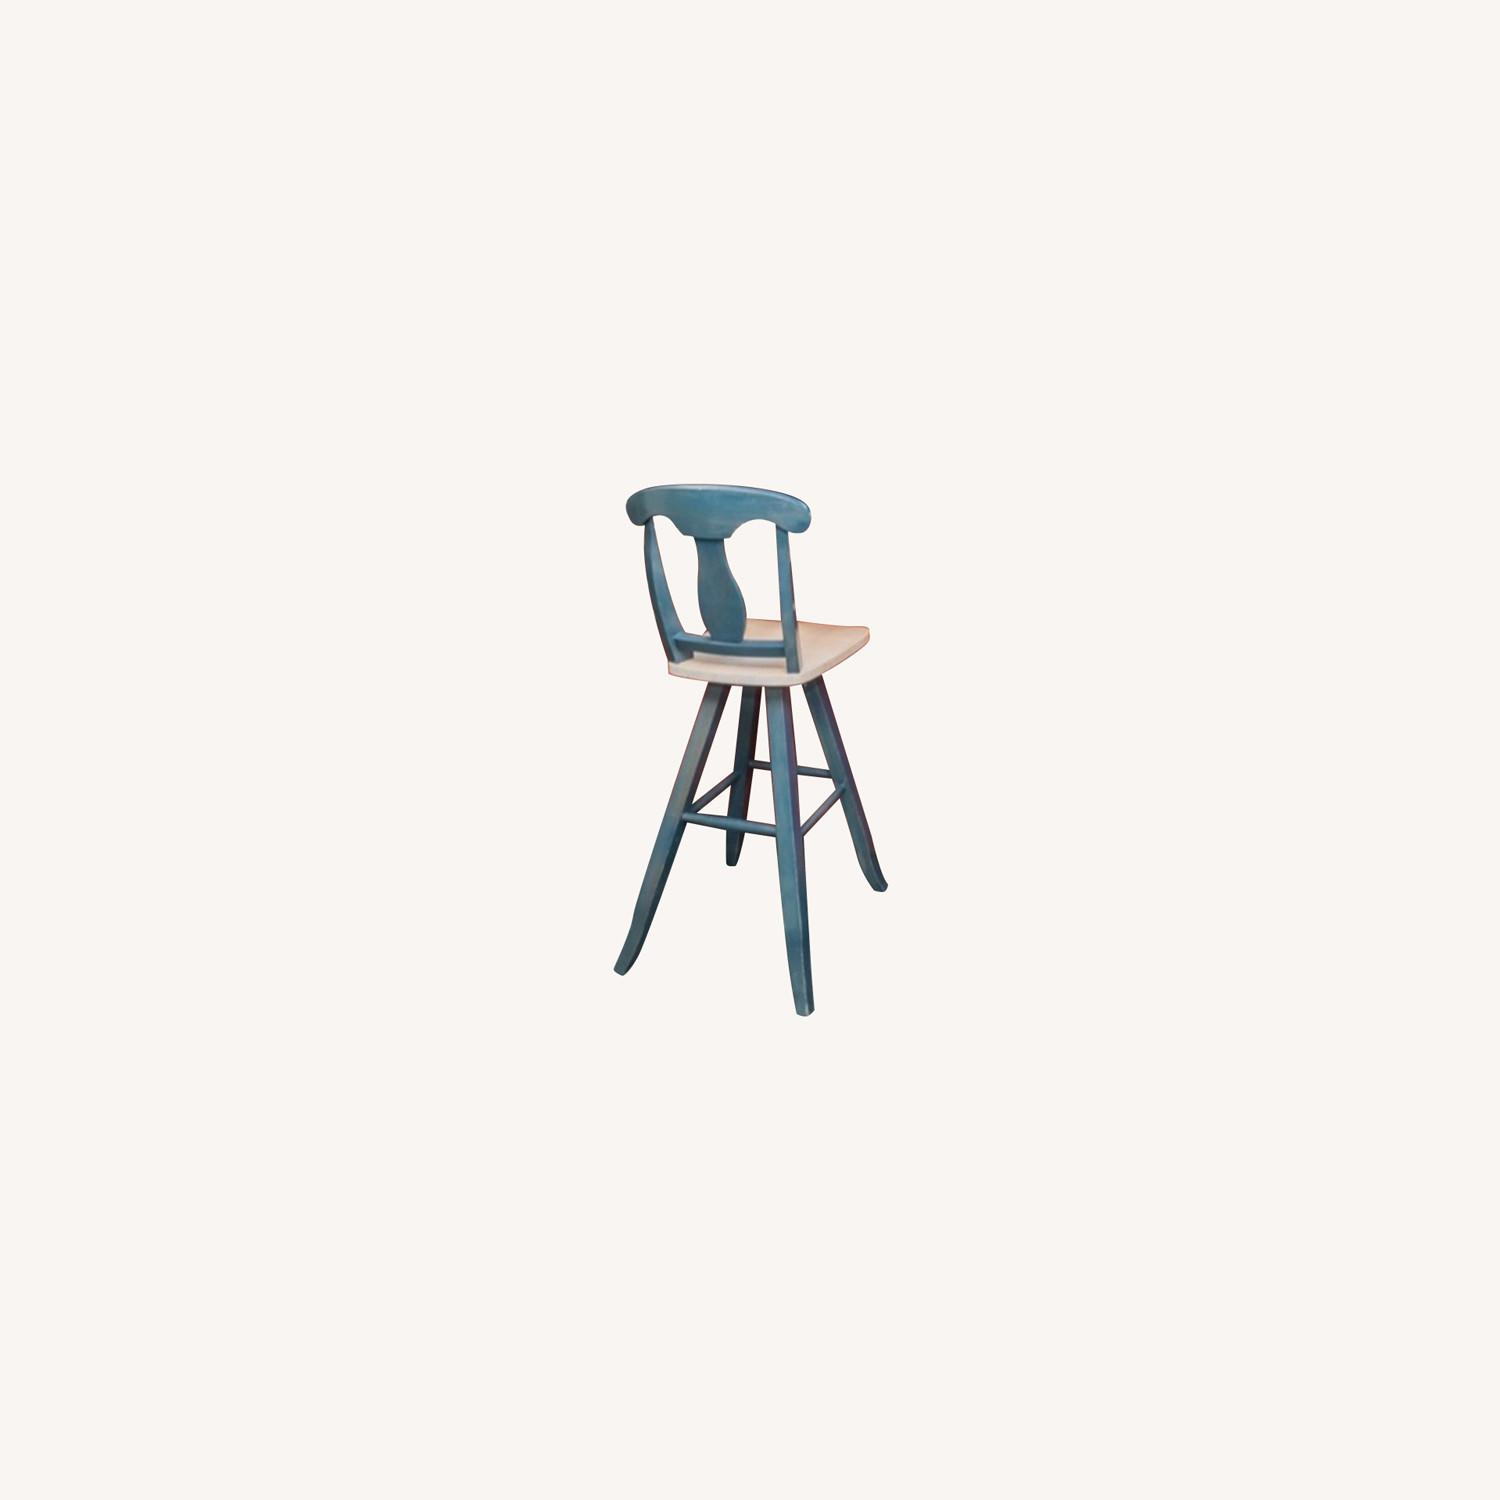 4 Blue Canadel Wooden Swivel Bar Counter Stools - image-0